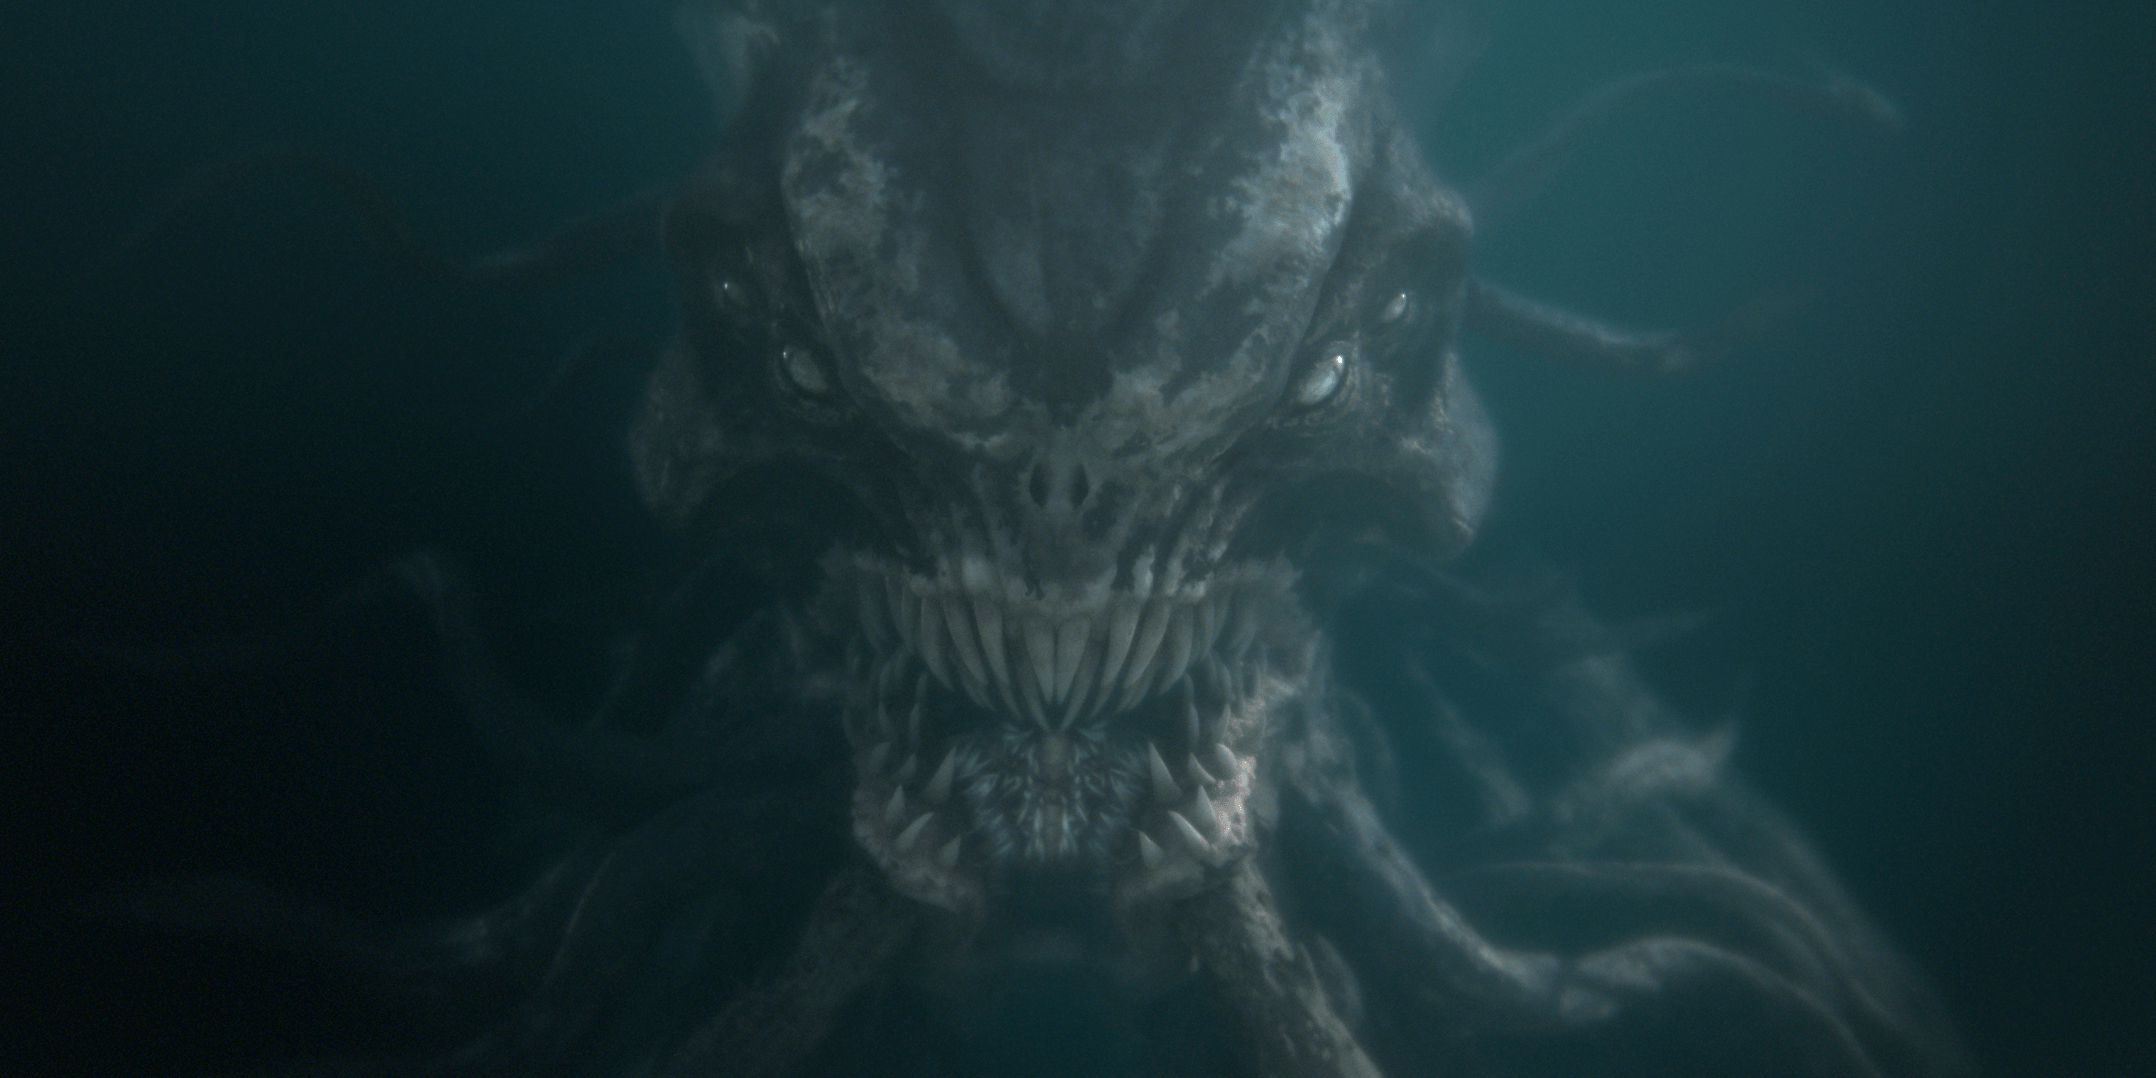 Underwater' Director Shares Creature Concept Art and Talks About ...